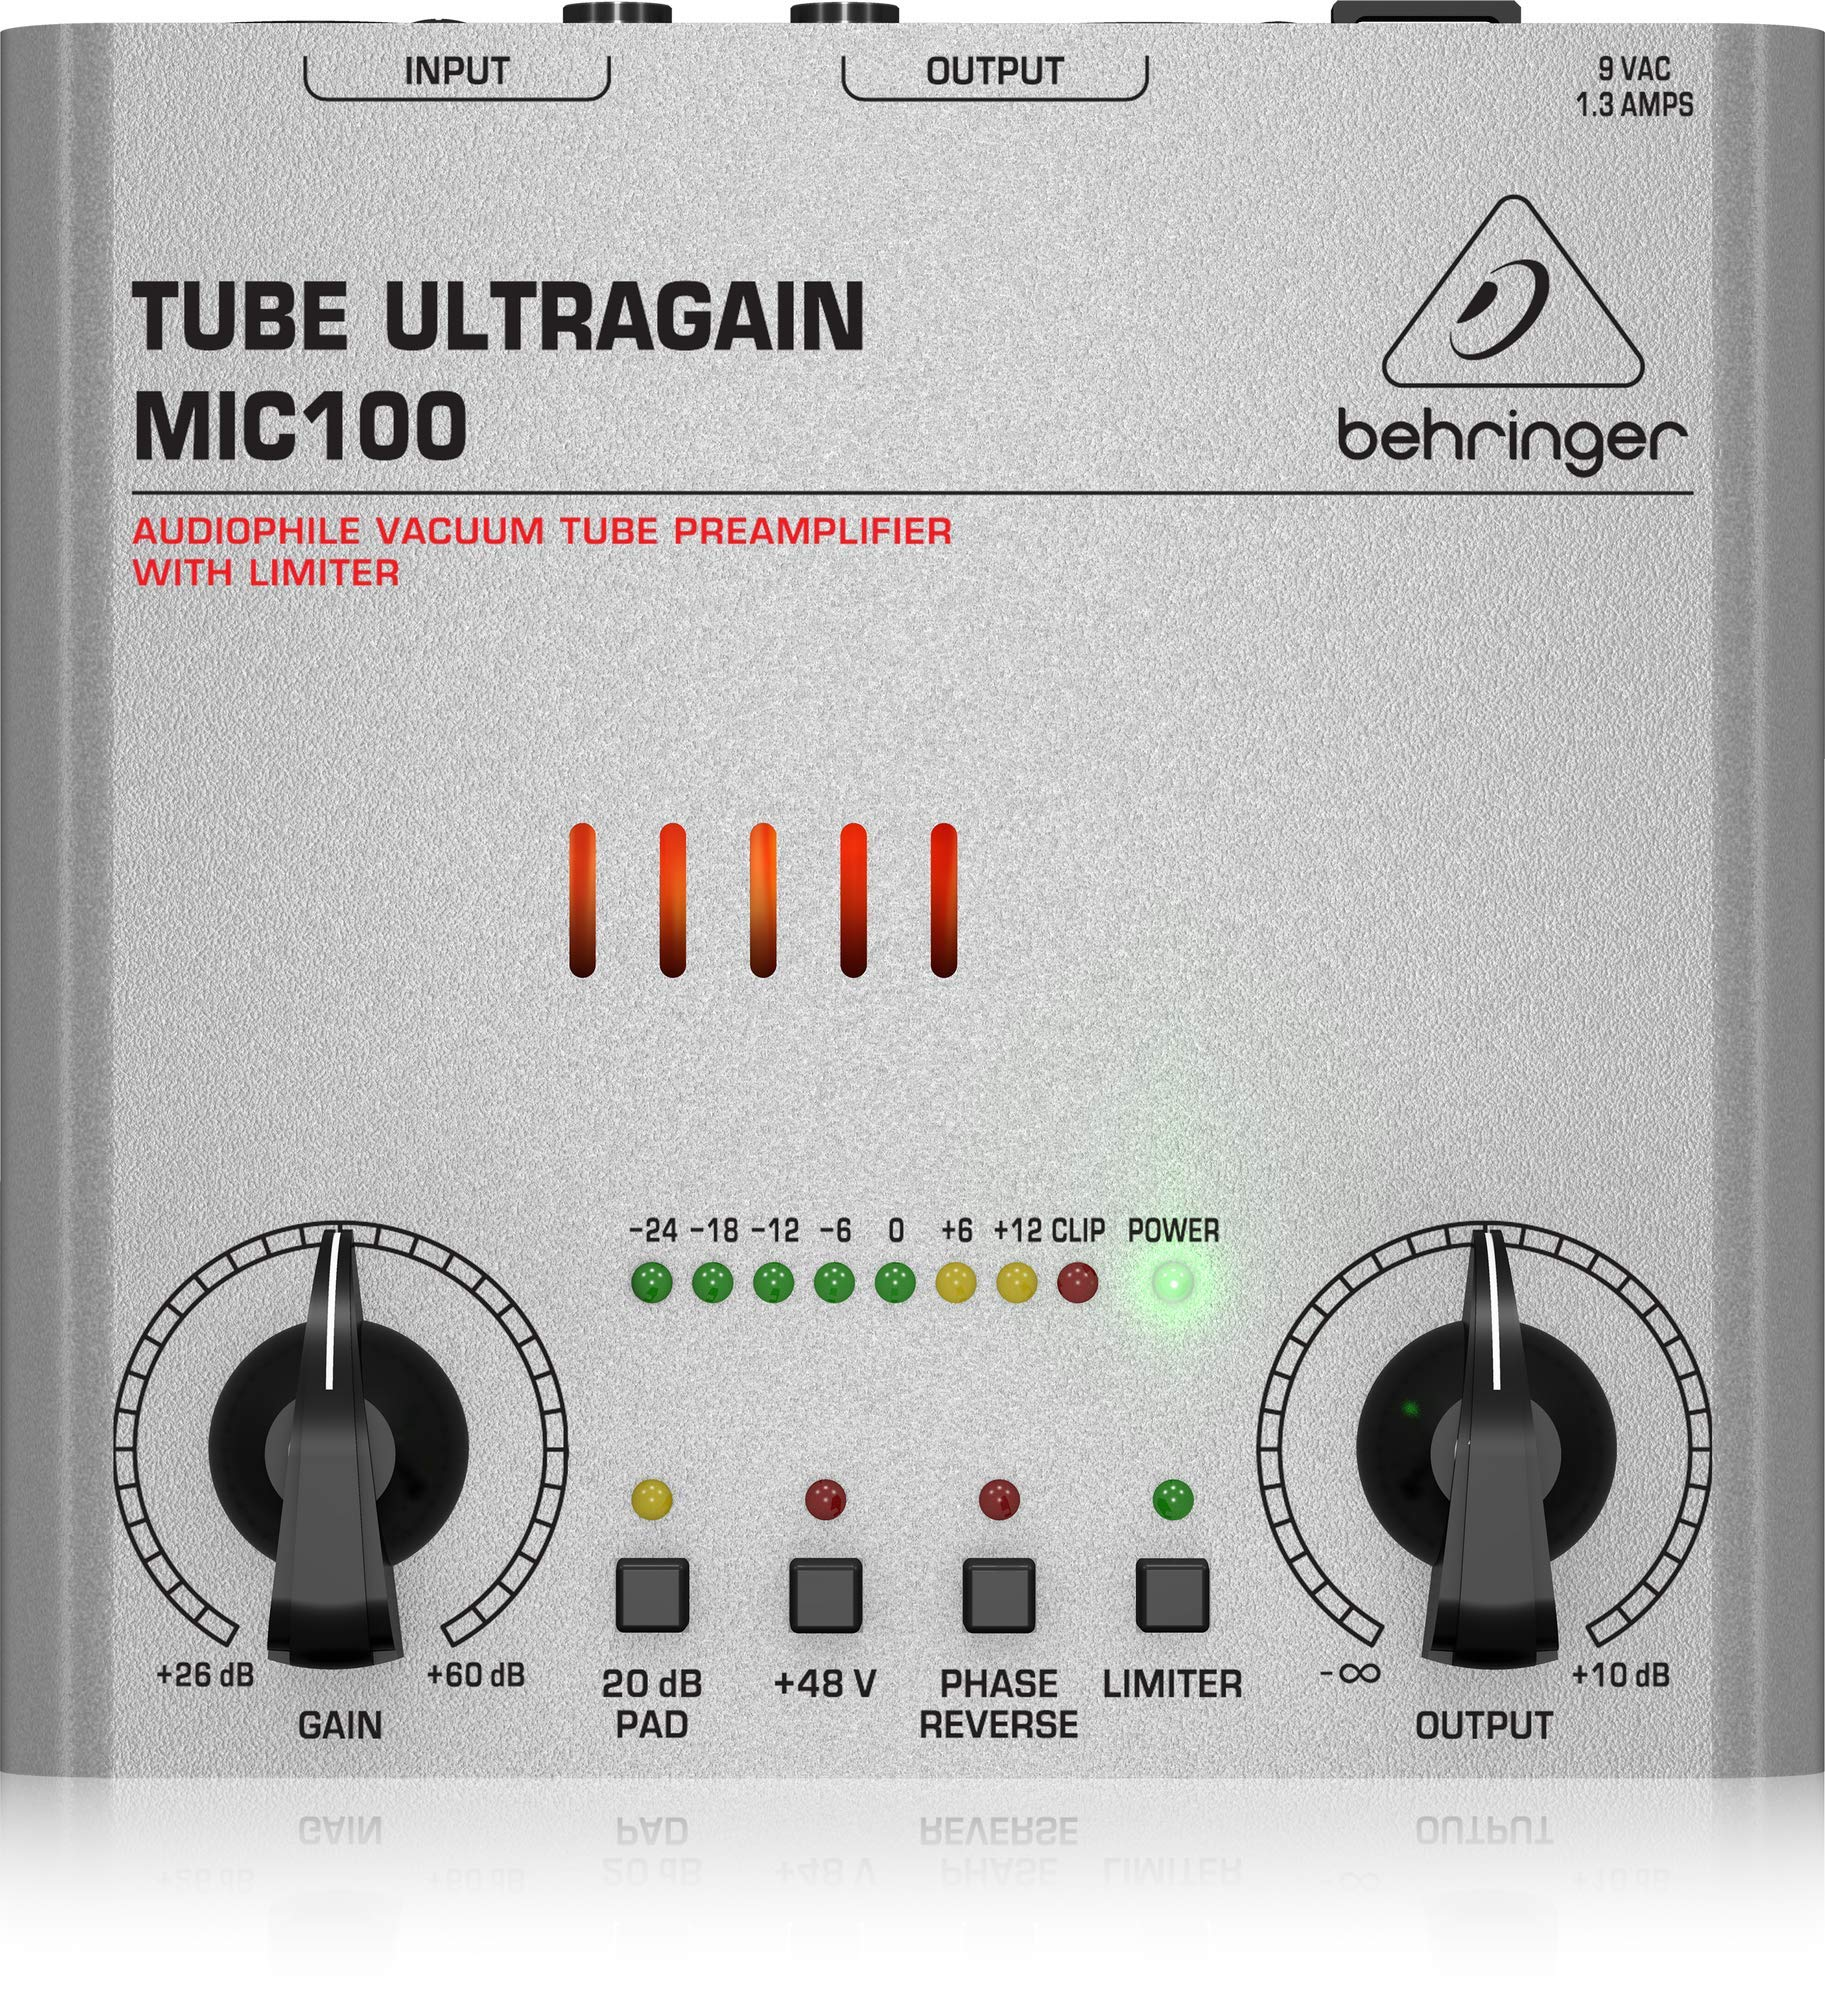 Behringer Tube Ultragain MIC100 Audiophile Vacuum Tube Preamplifier with Limiter by Behringer